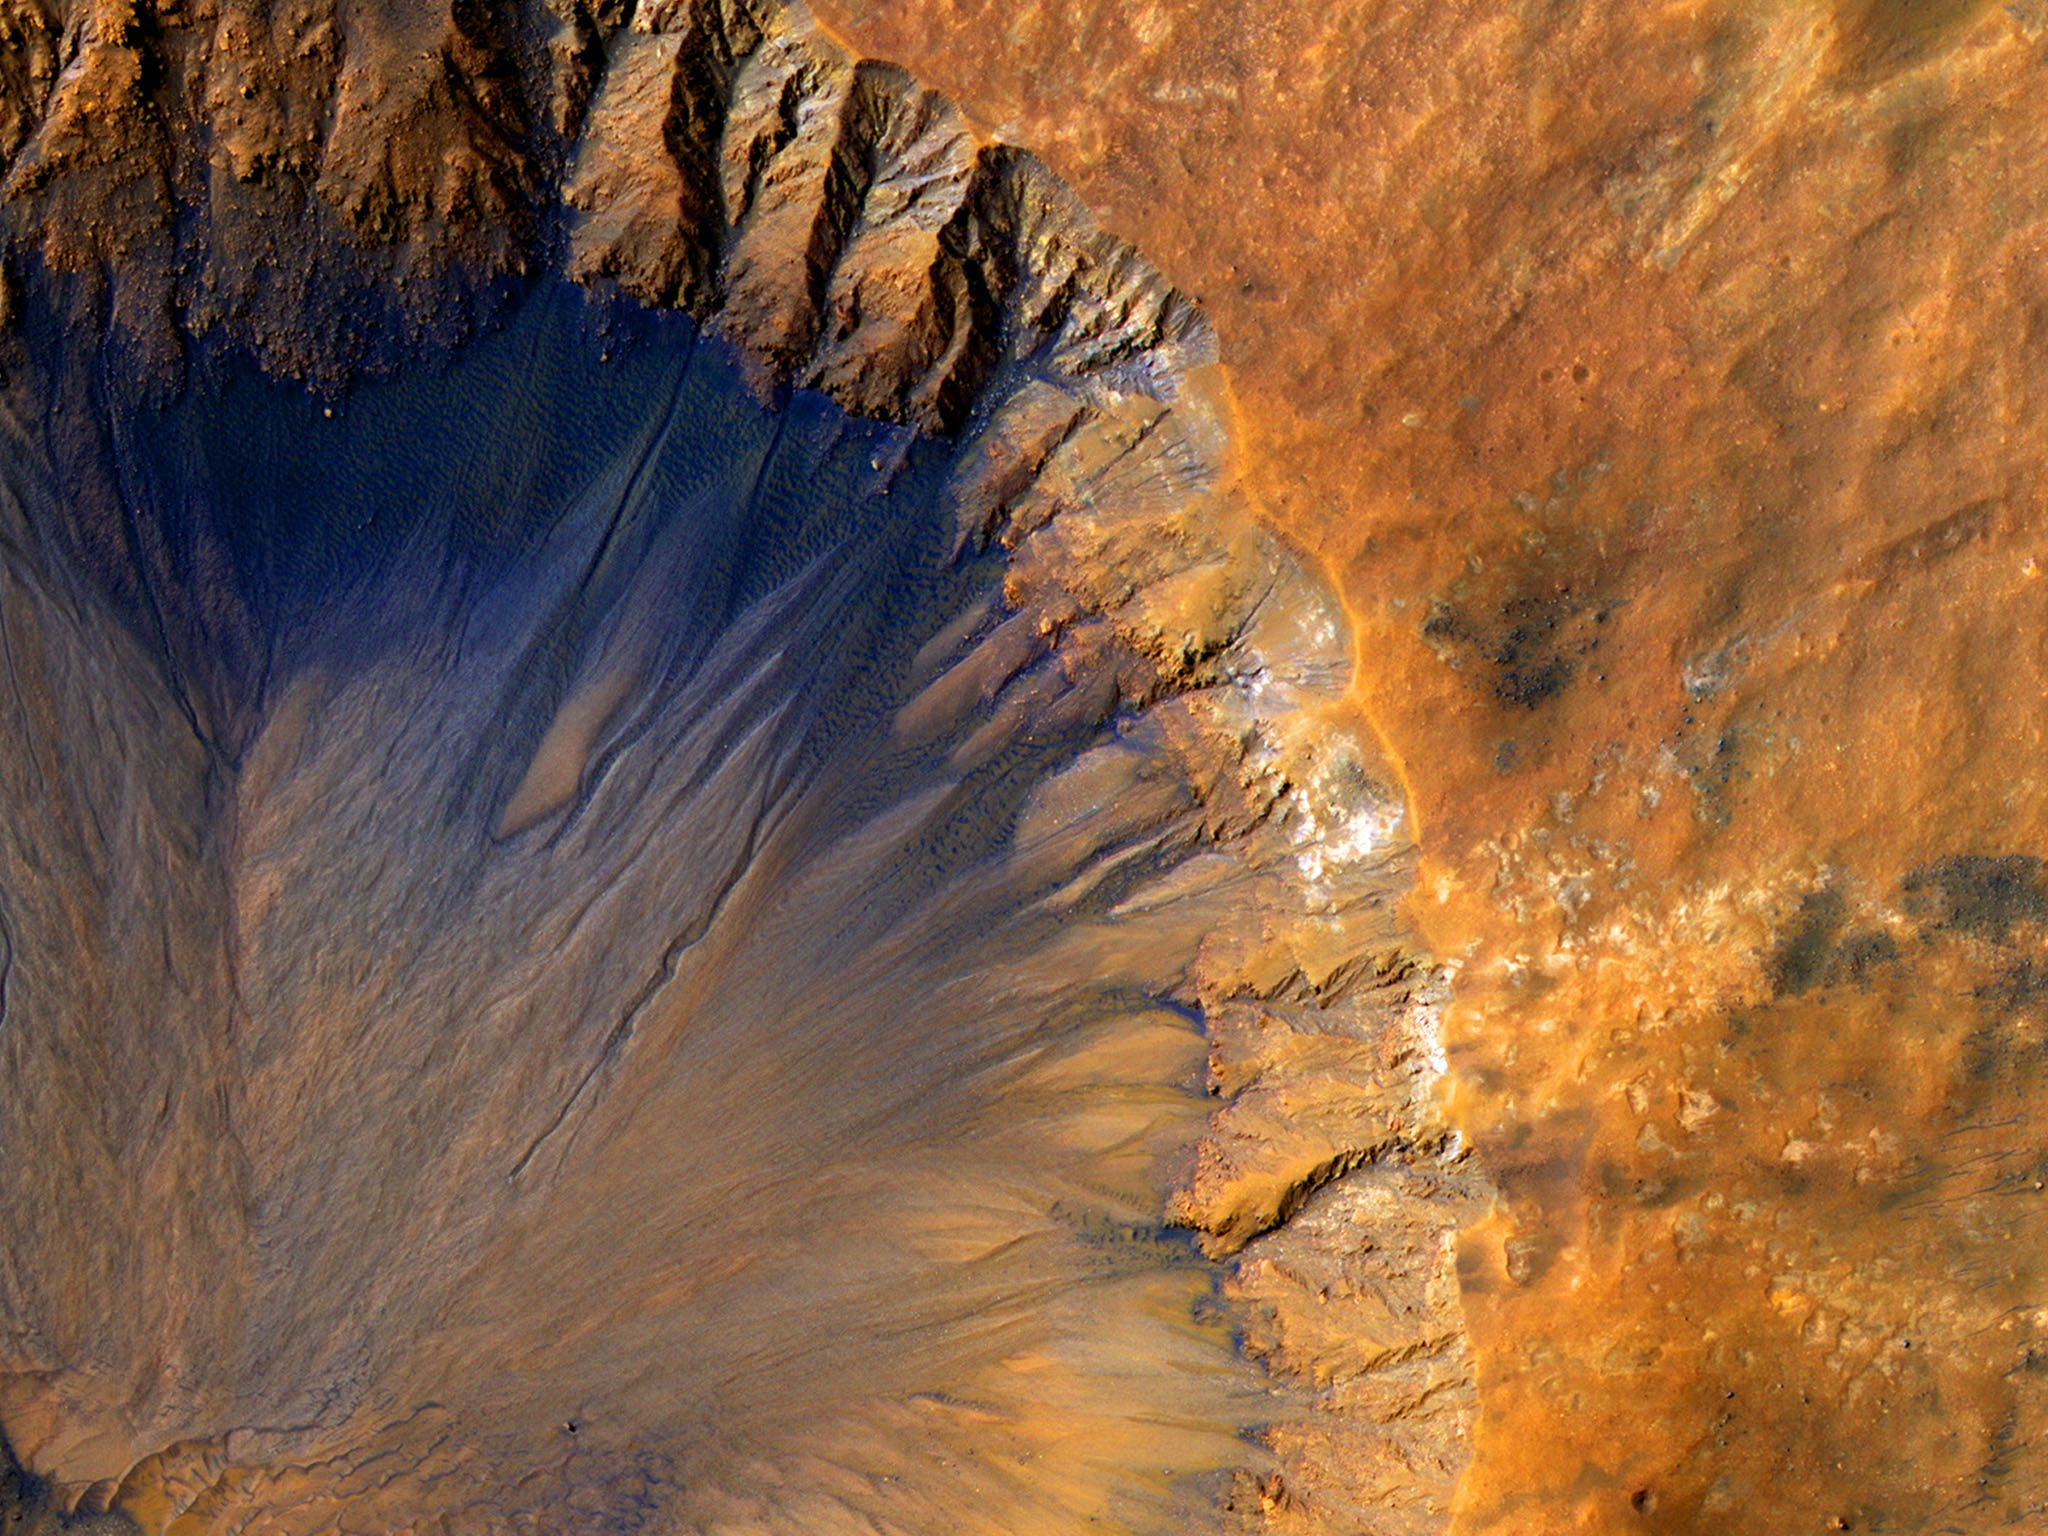 Fresh Crater Near Sirenum Fossae Region of Mars. The High Resolution Imaging Science Experiment... [Photo of the day - دسامبر 2016]